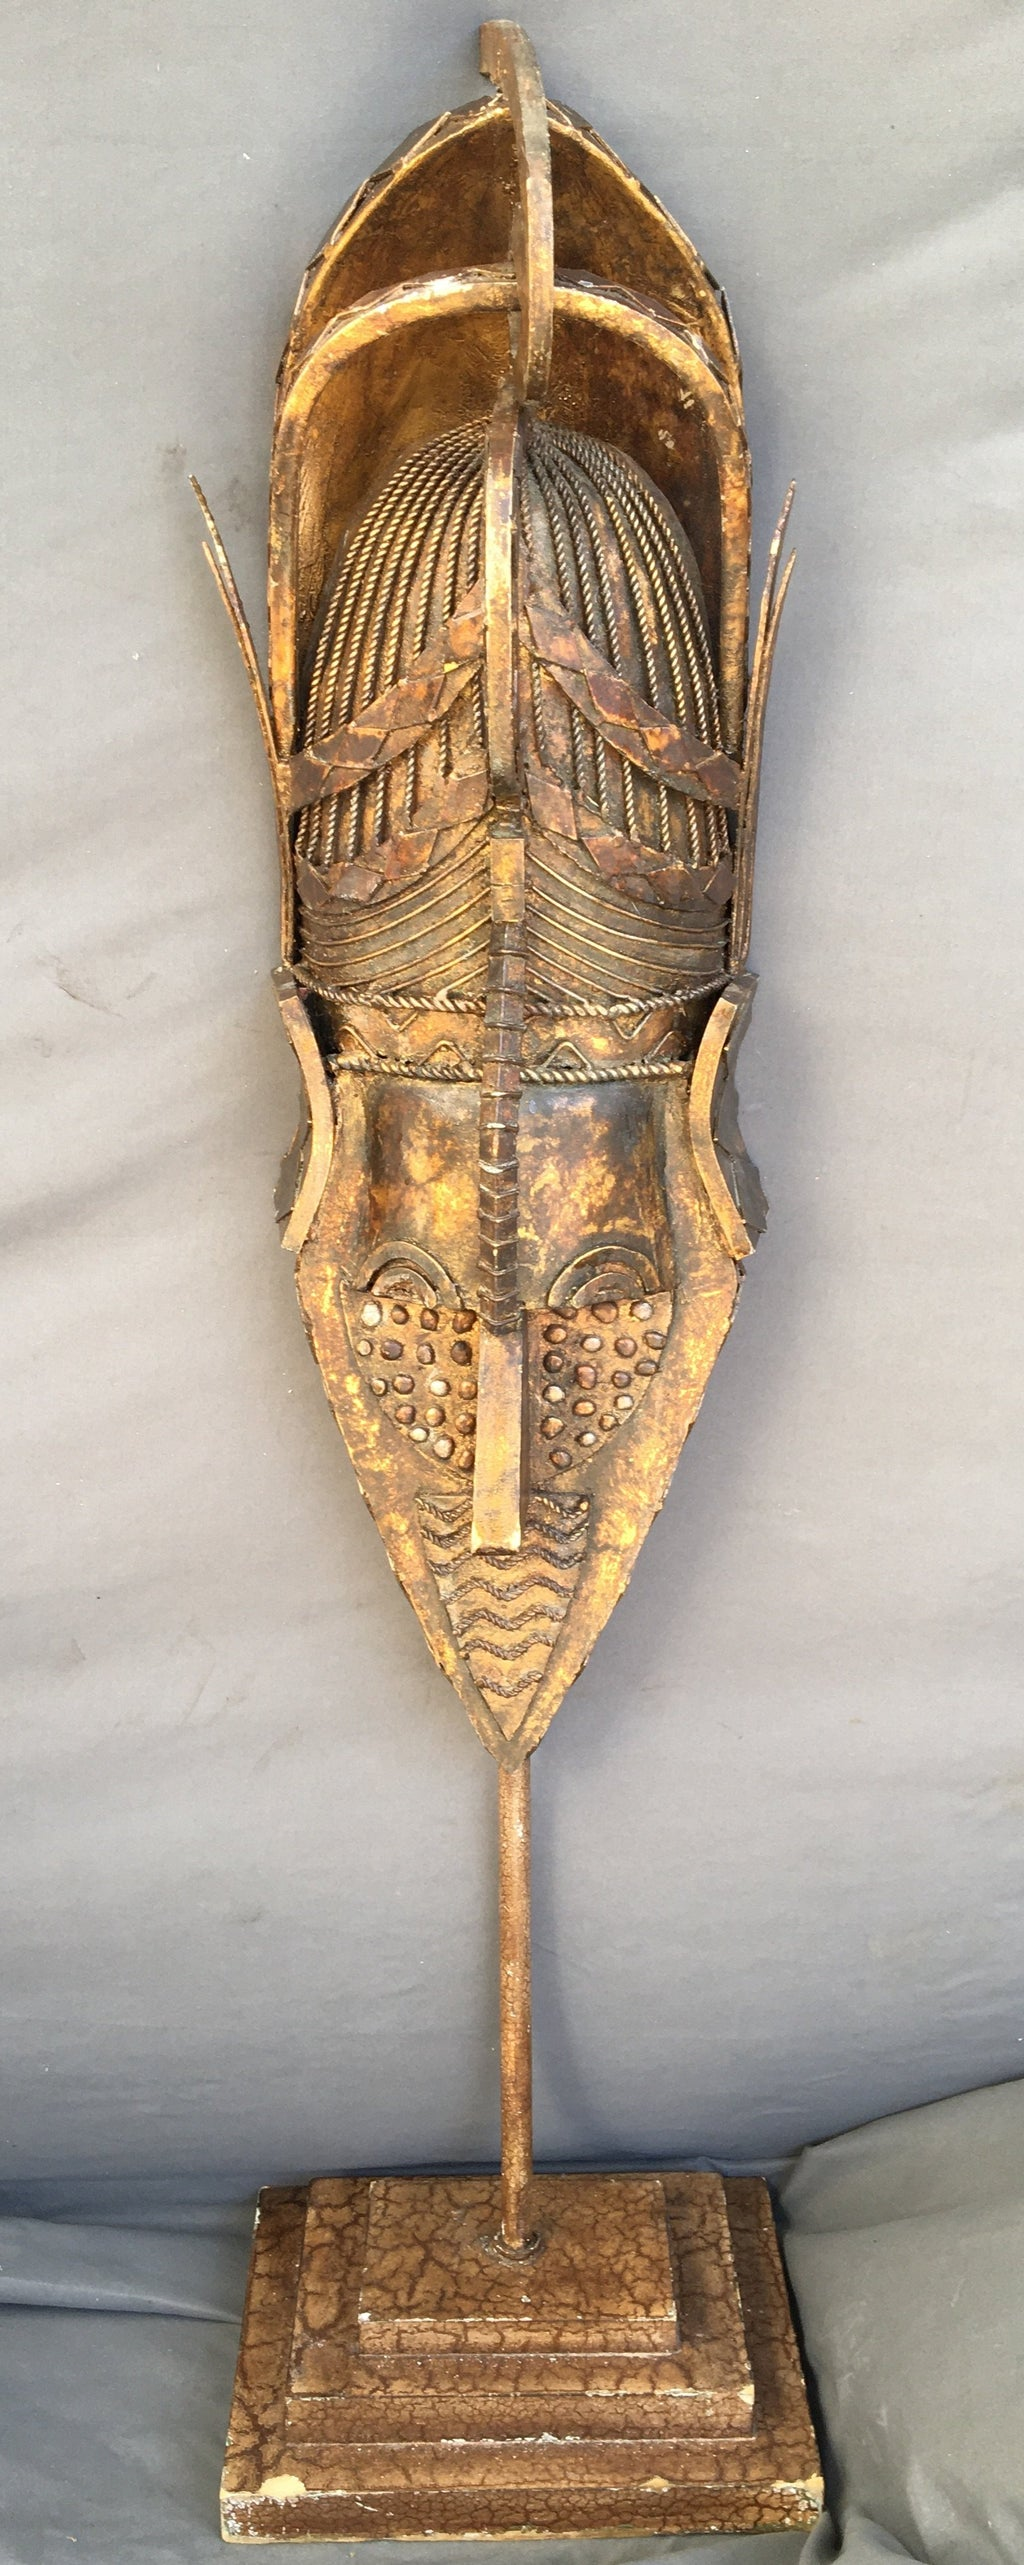 GOLD METAL MASK ON STAND